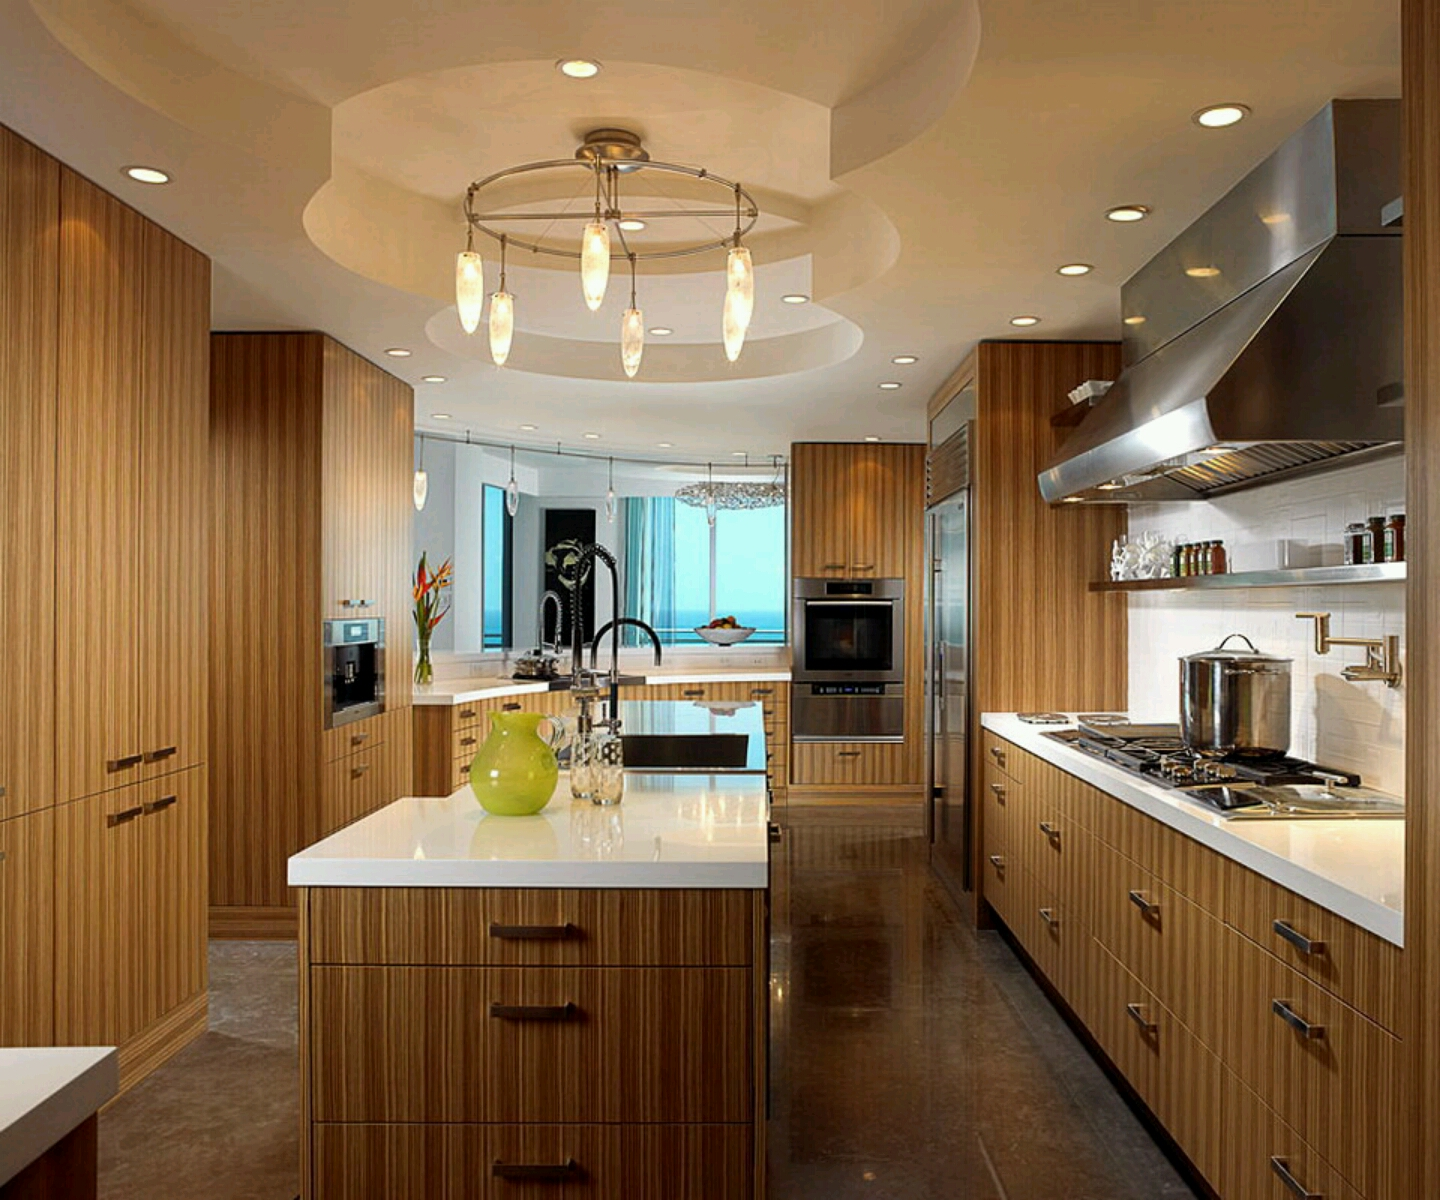 Modern wooden kitchen cabinets designs.